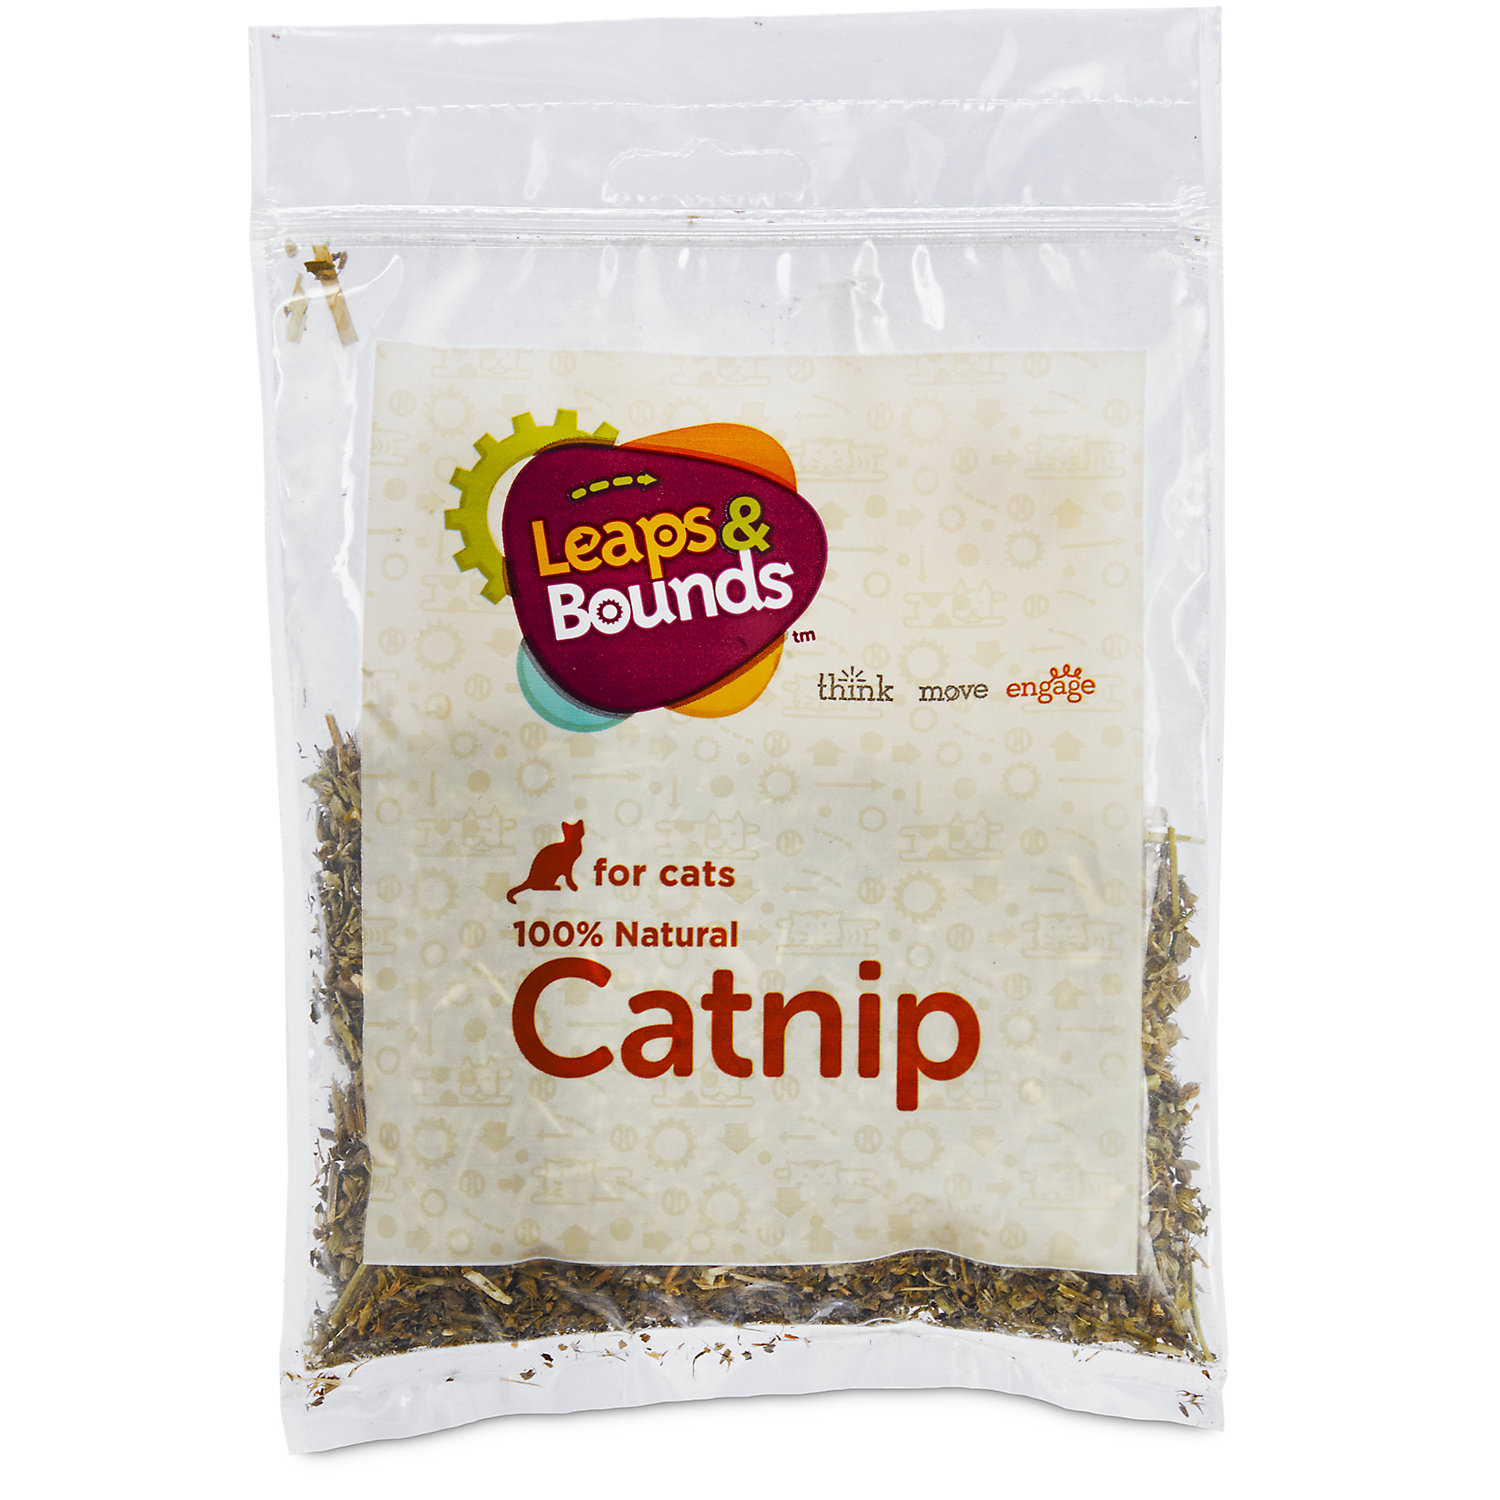 Image of Leaps & Bounds 100% Natural Catnip